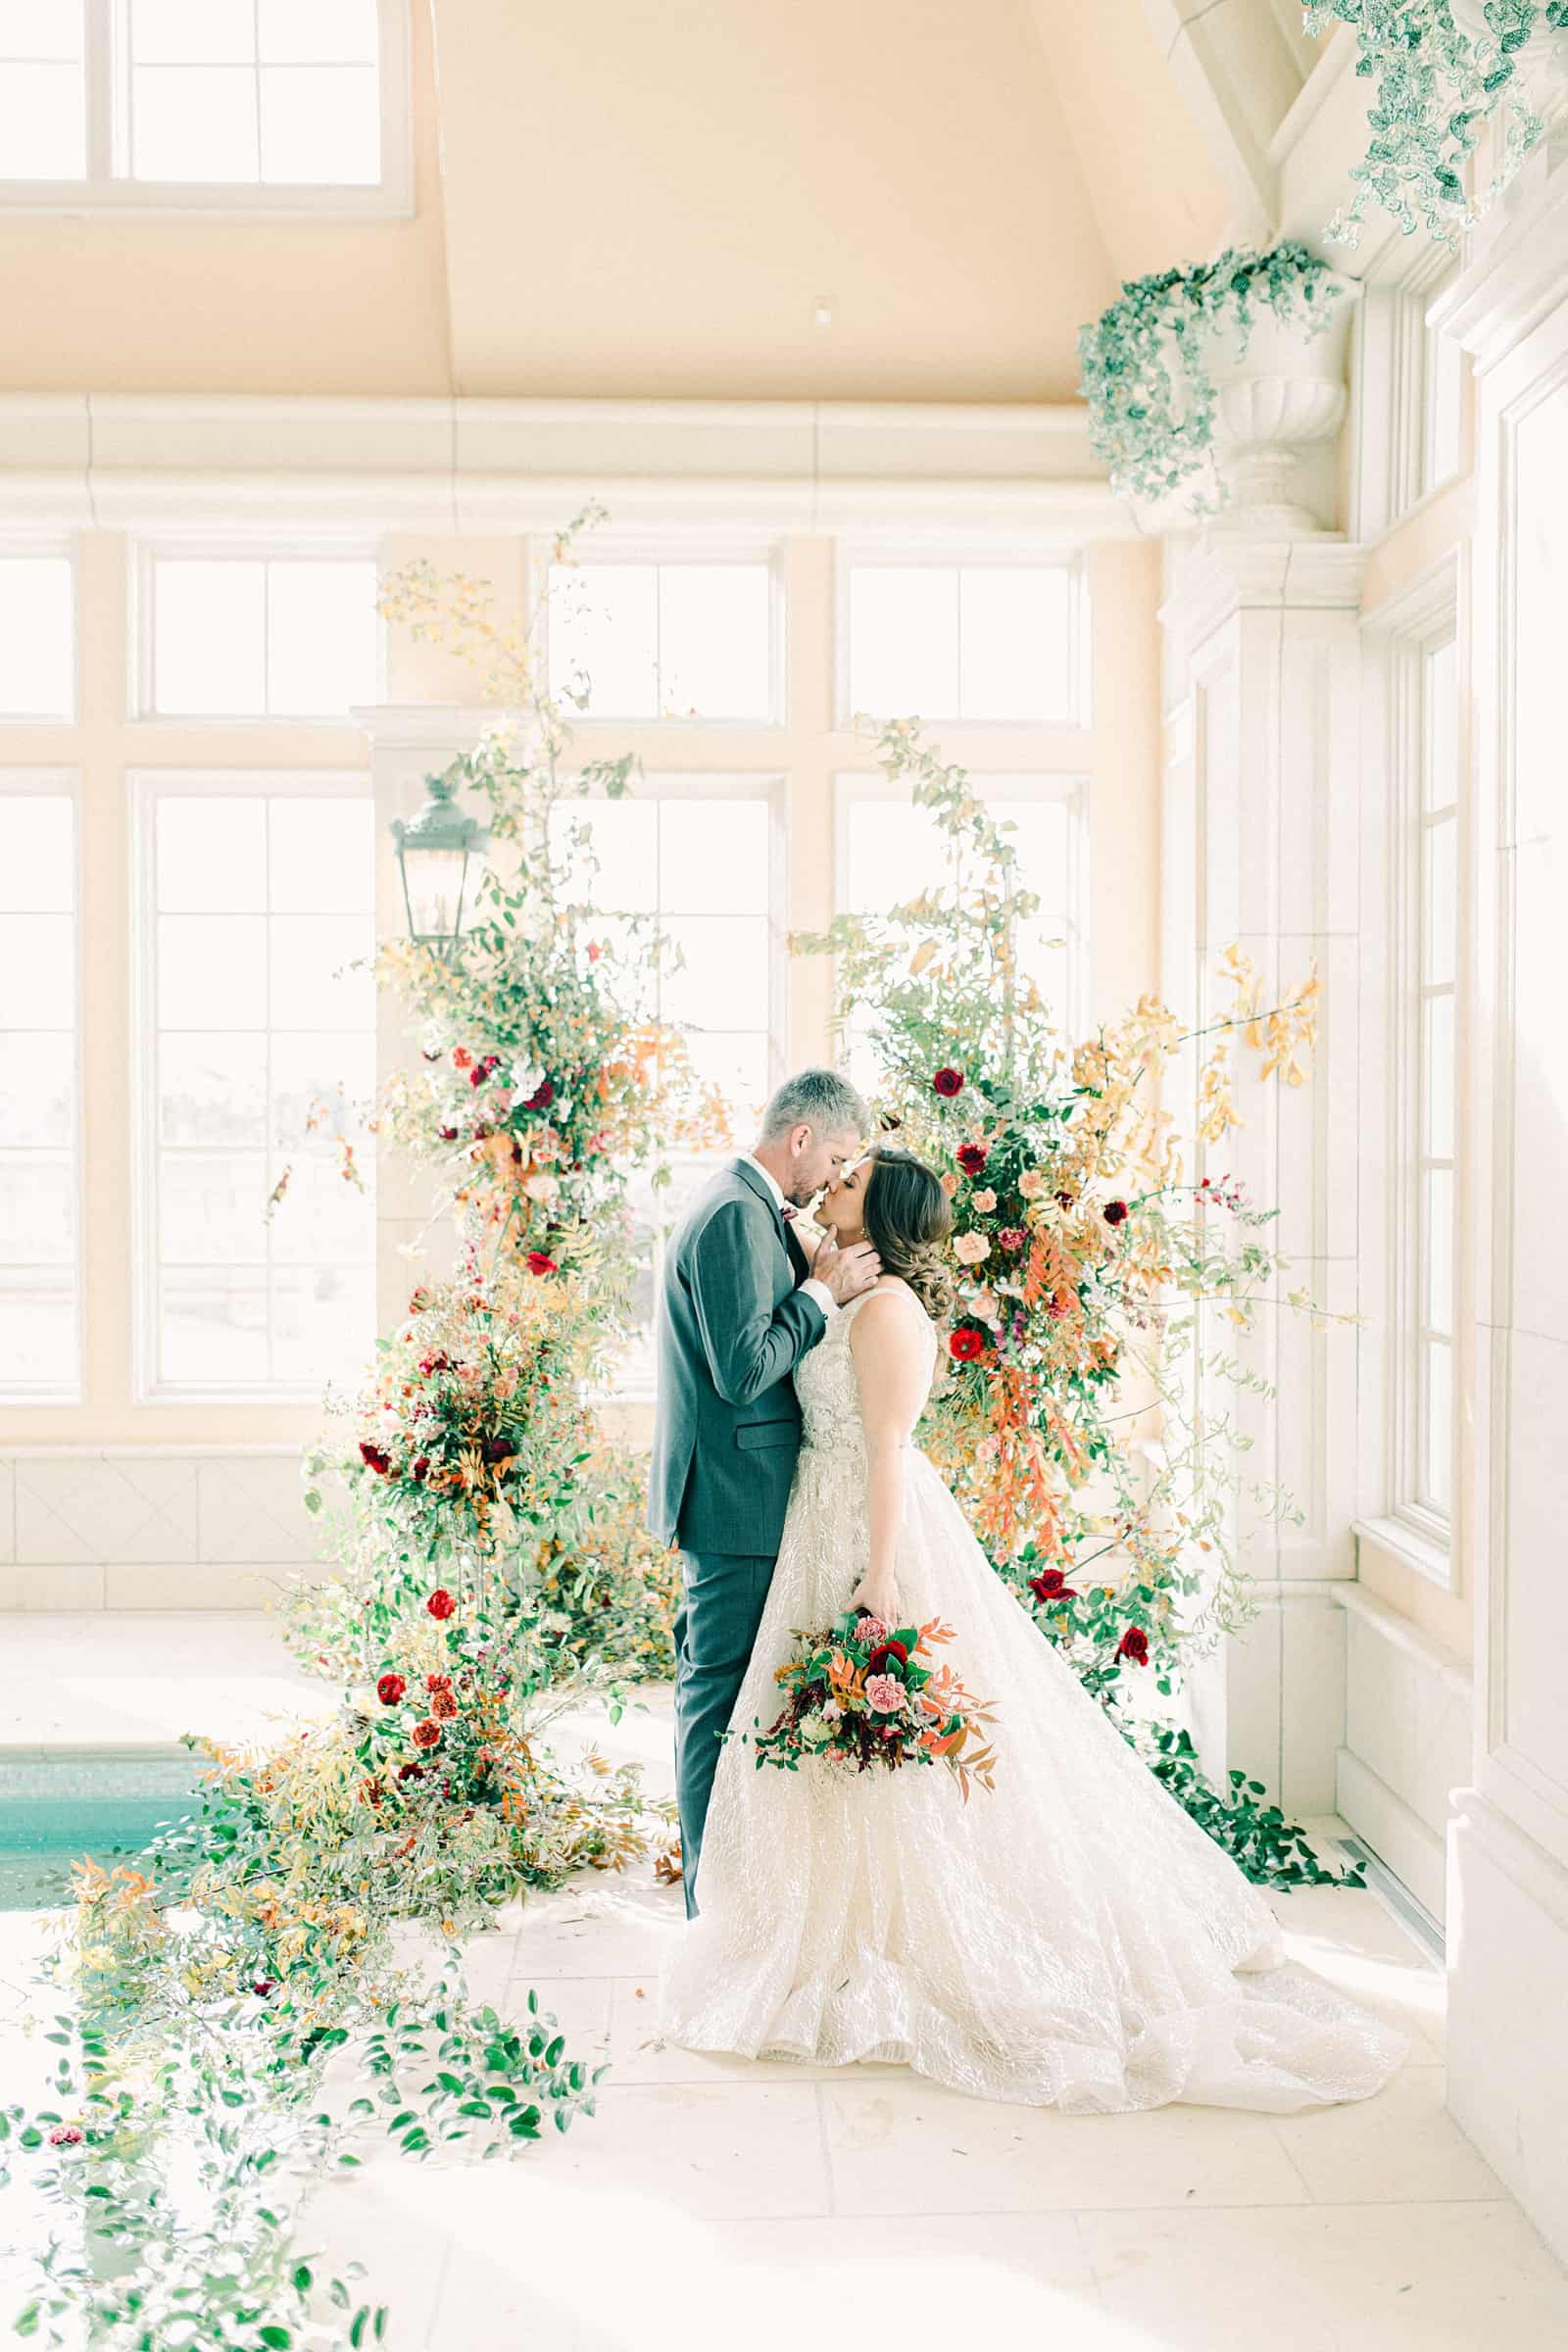 French-inspired wedding at the Olana mansion in Dallas, Texas, pool house ceremony, bride and groom with ceremony backdrop